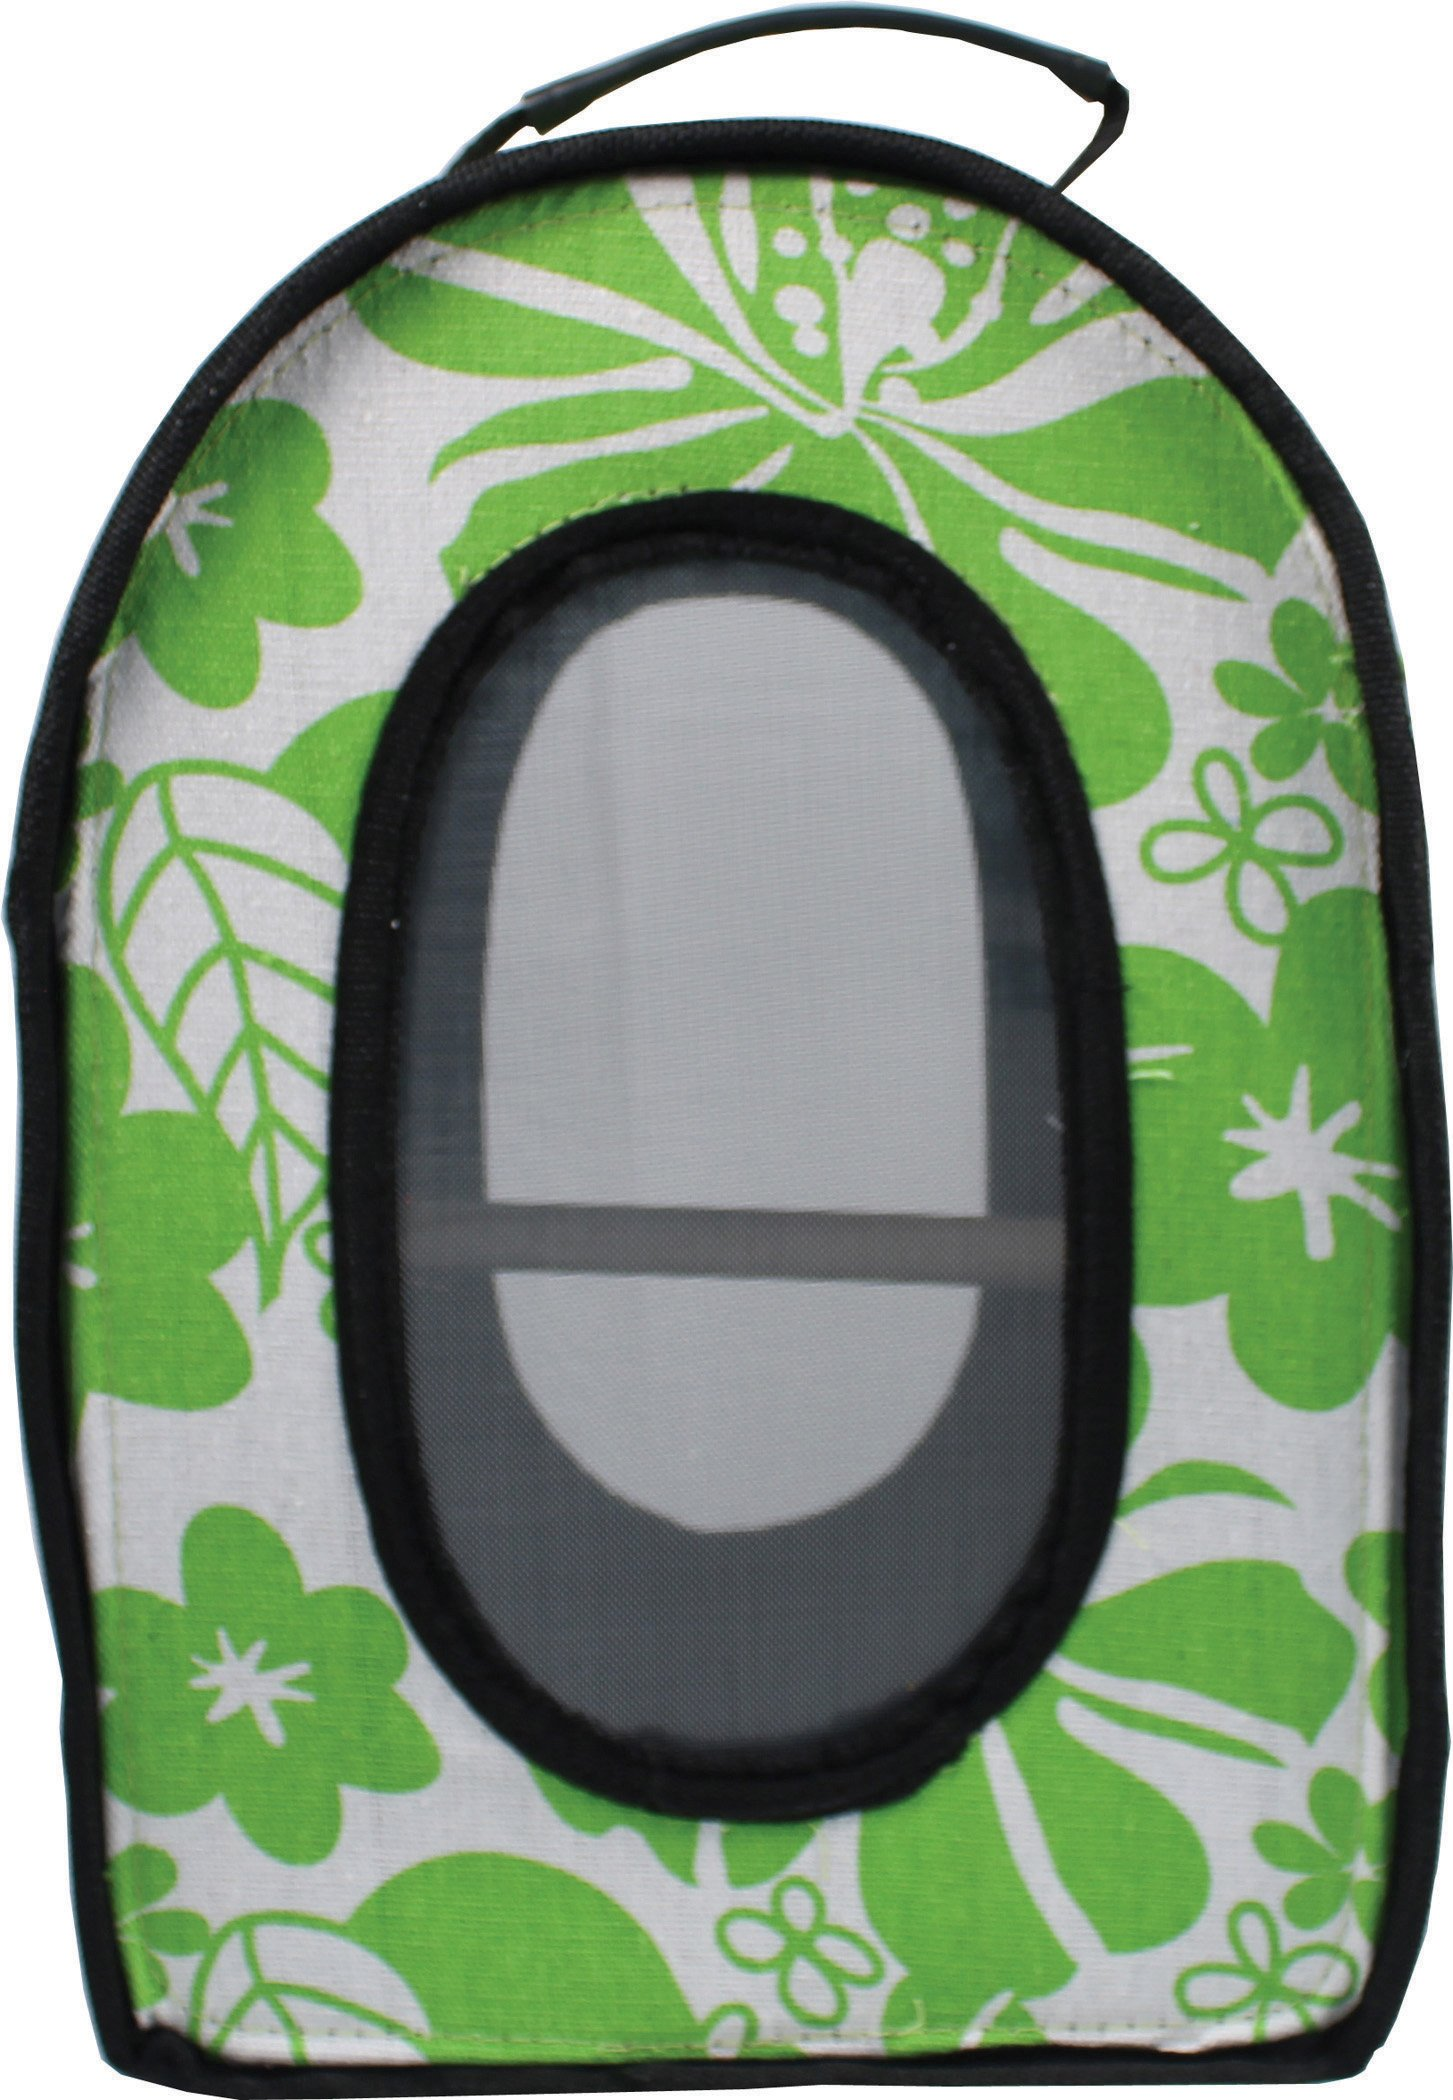 A&E CAGE COMPANY 001375 Green Happy Beaks Soft Sided Bird Travel Carrier, 13.5 x 9 x 18.5